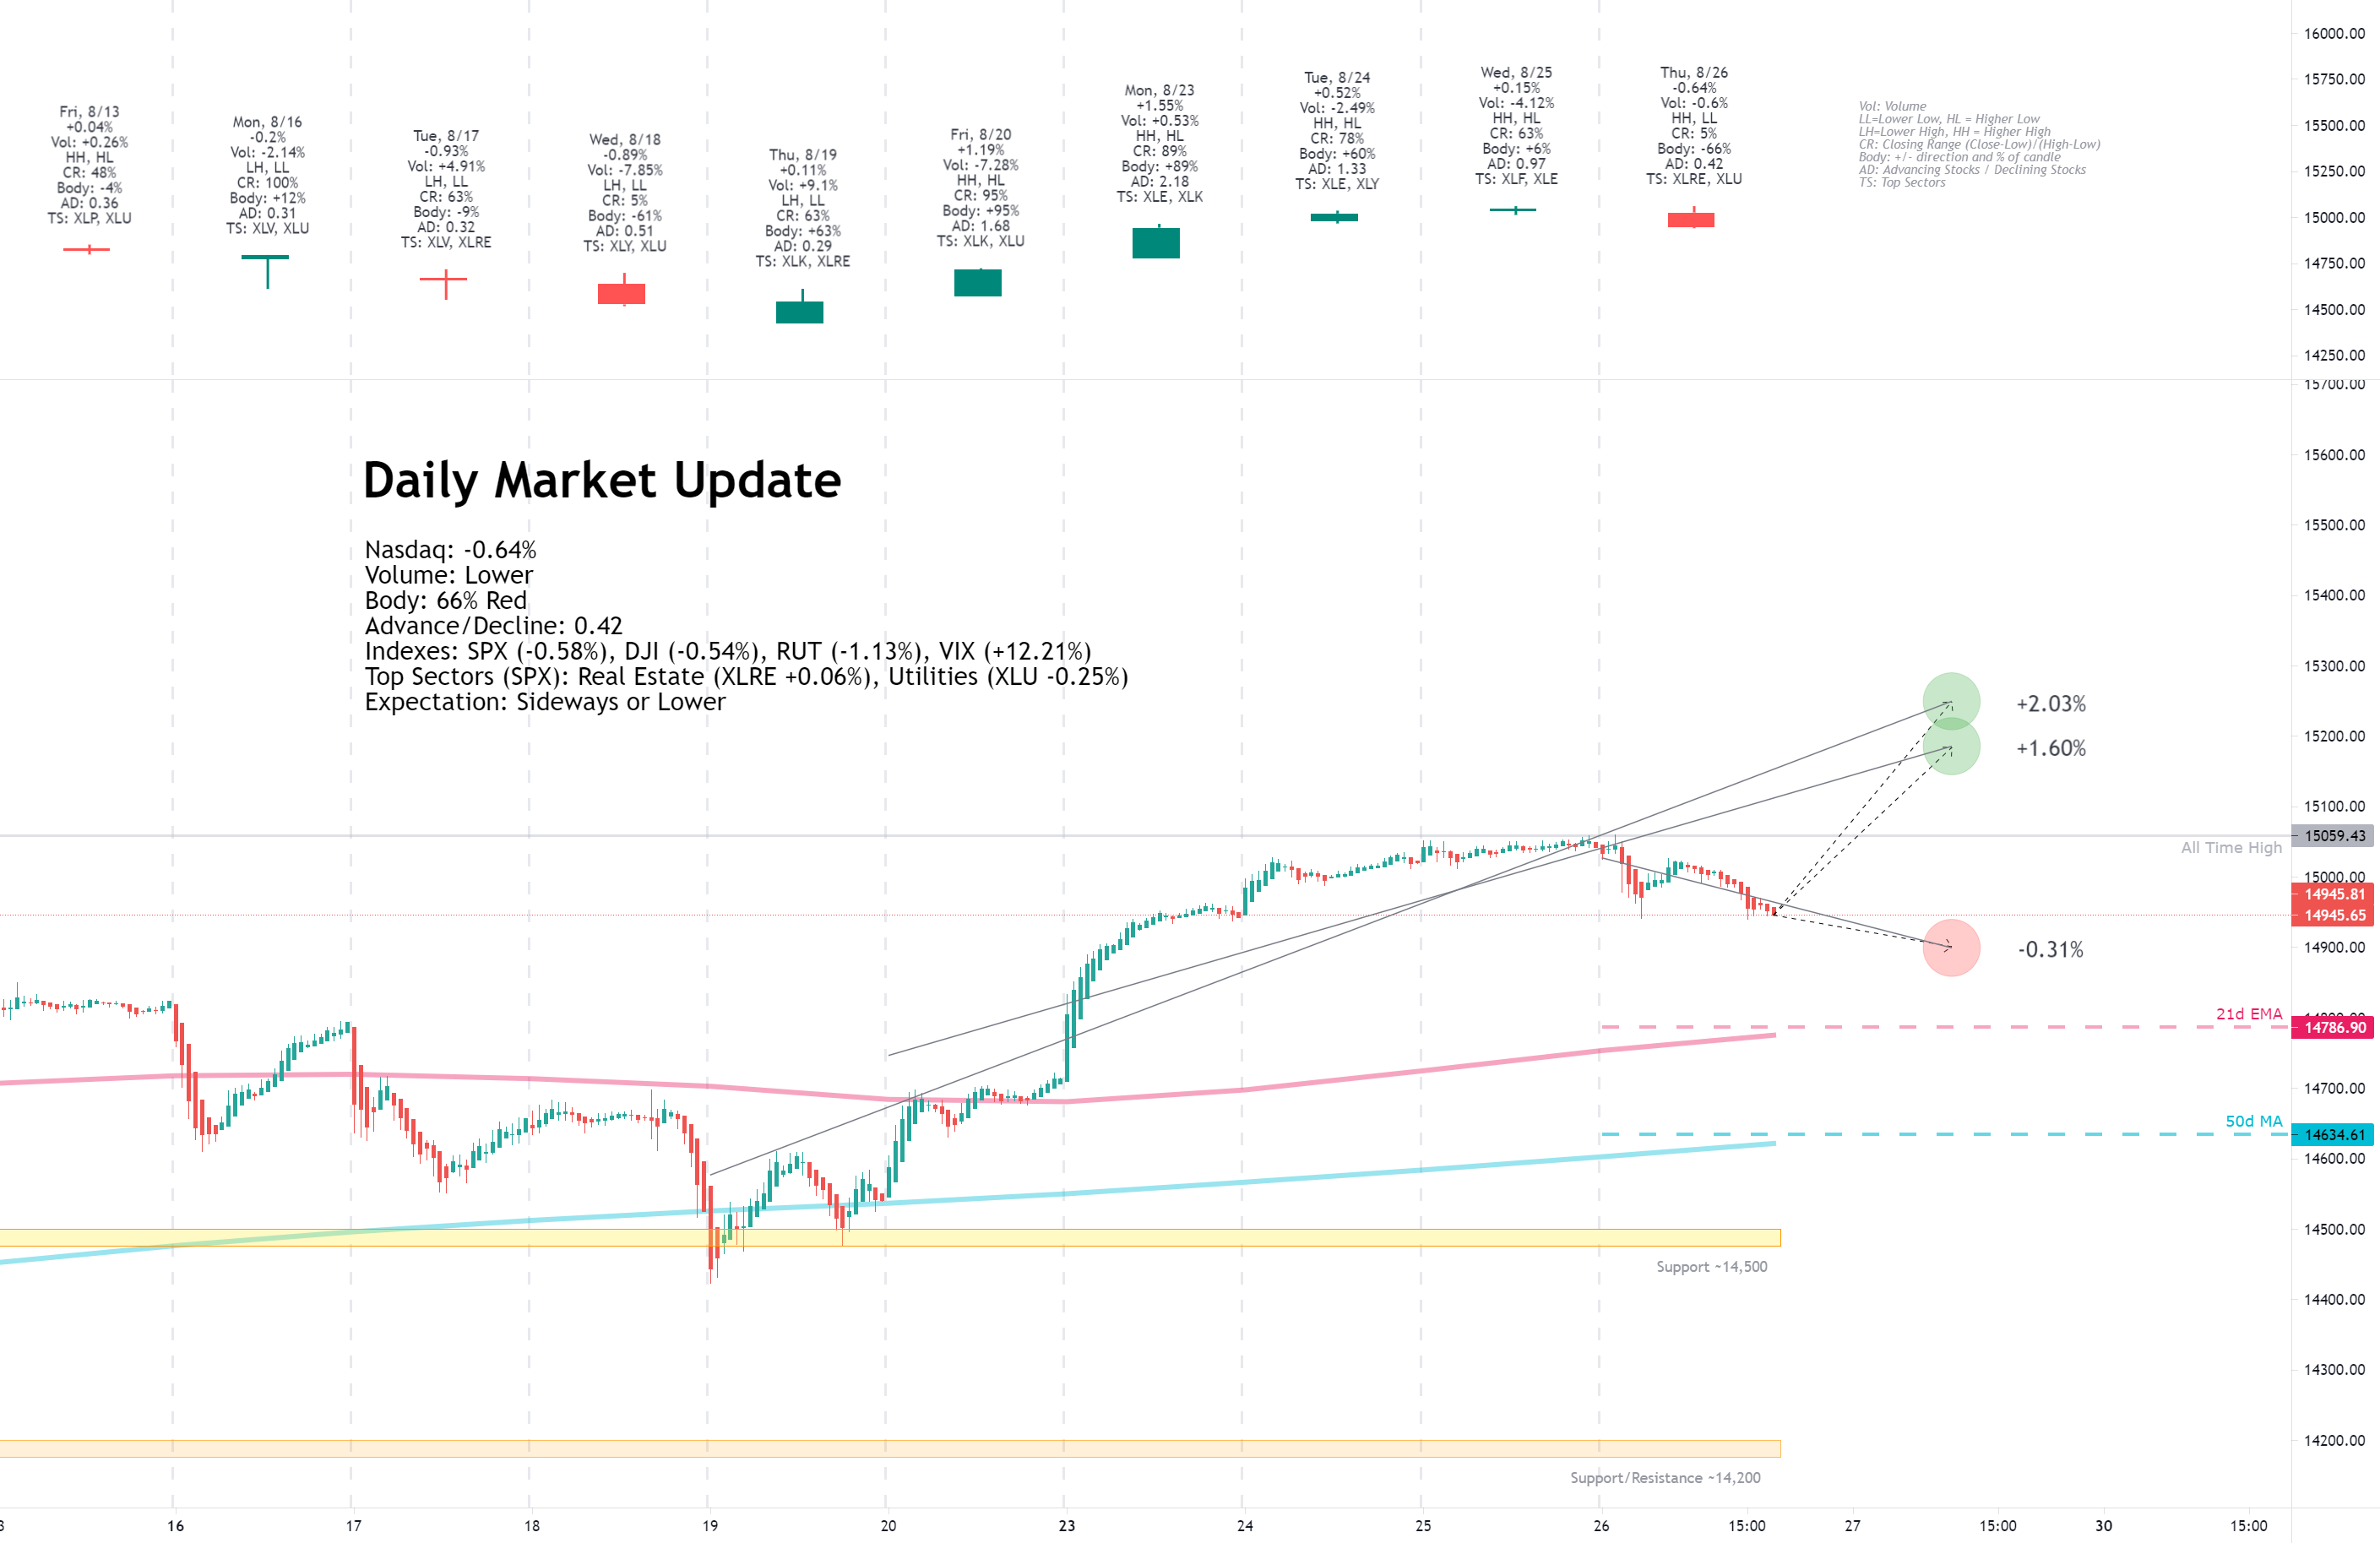 Daily Market Update for 8/26